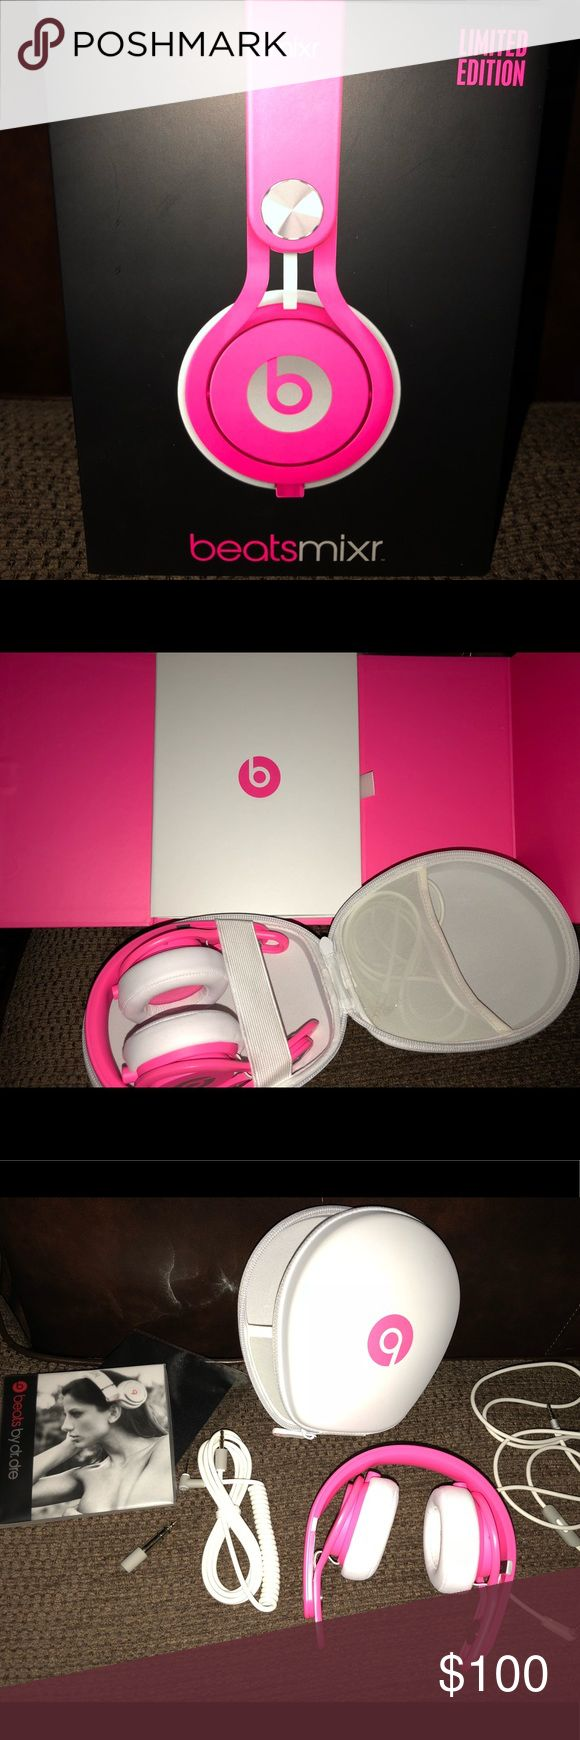 Beats LIMITED EDITION Pink Mixr LIMITED EDITION Beats Mixr, pink, brand new condition, complete with original box, carrying case, cords, and owners manual, $100 Beats by Dre Accessories